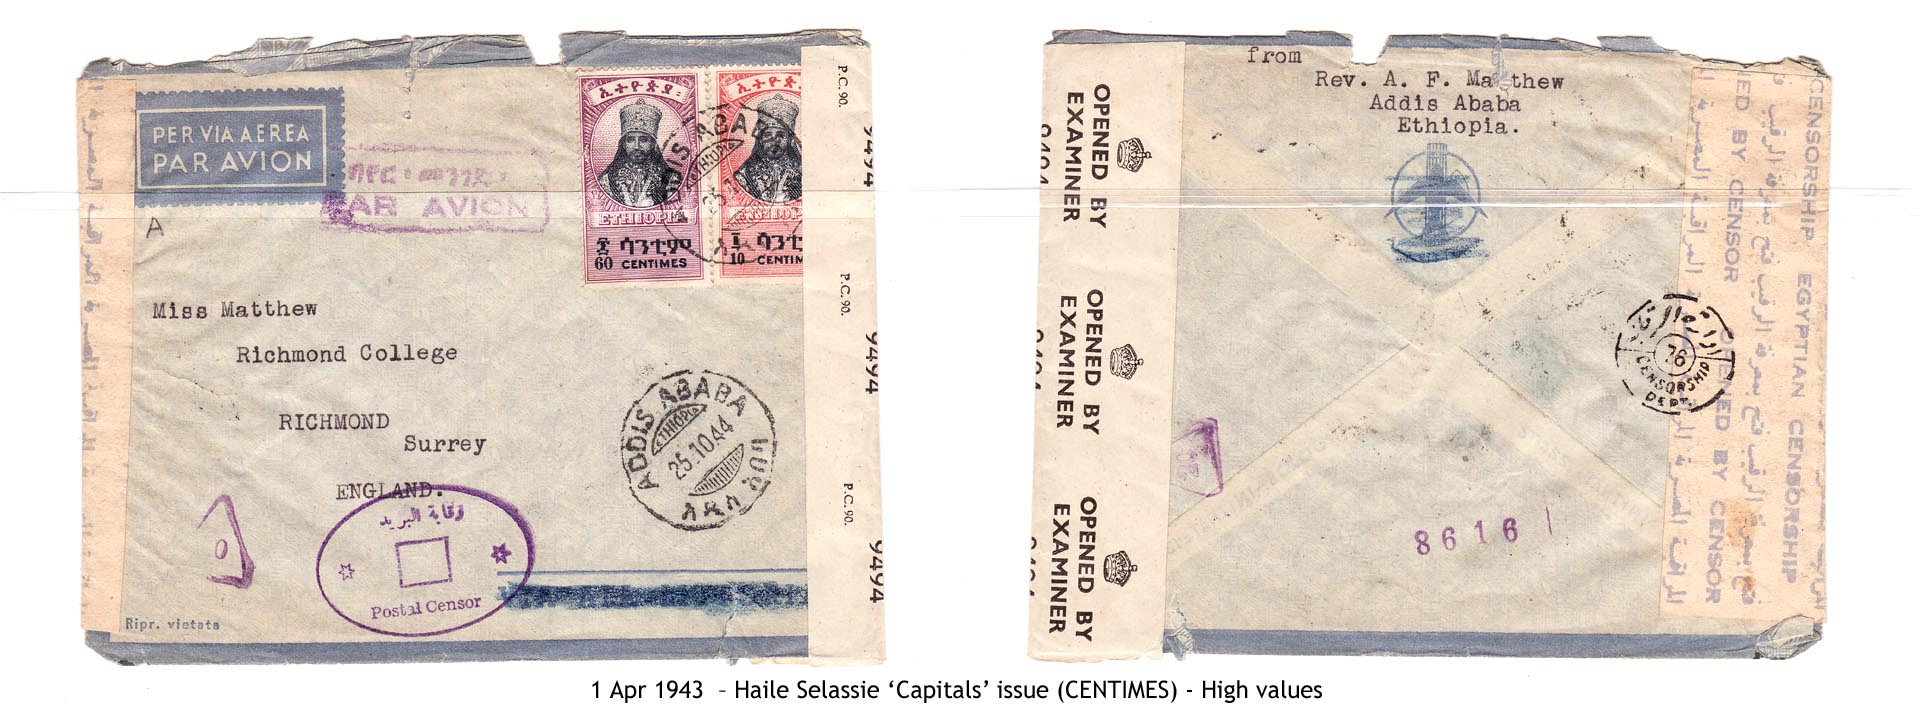 19430401 – Haile Selassie 'Capitals' issue (CENTIMES)